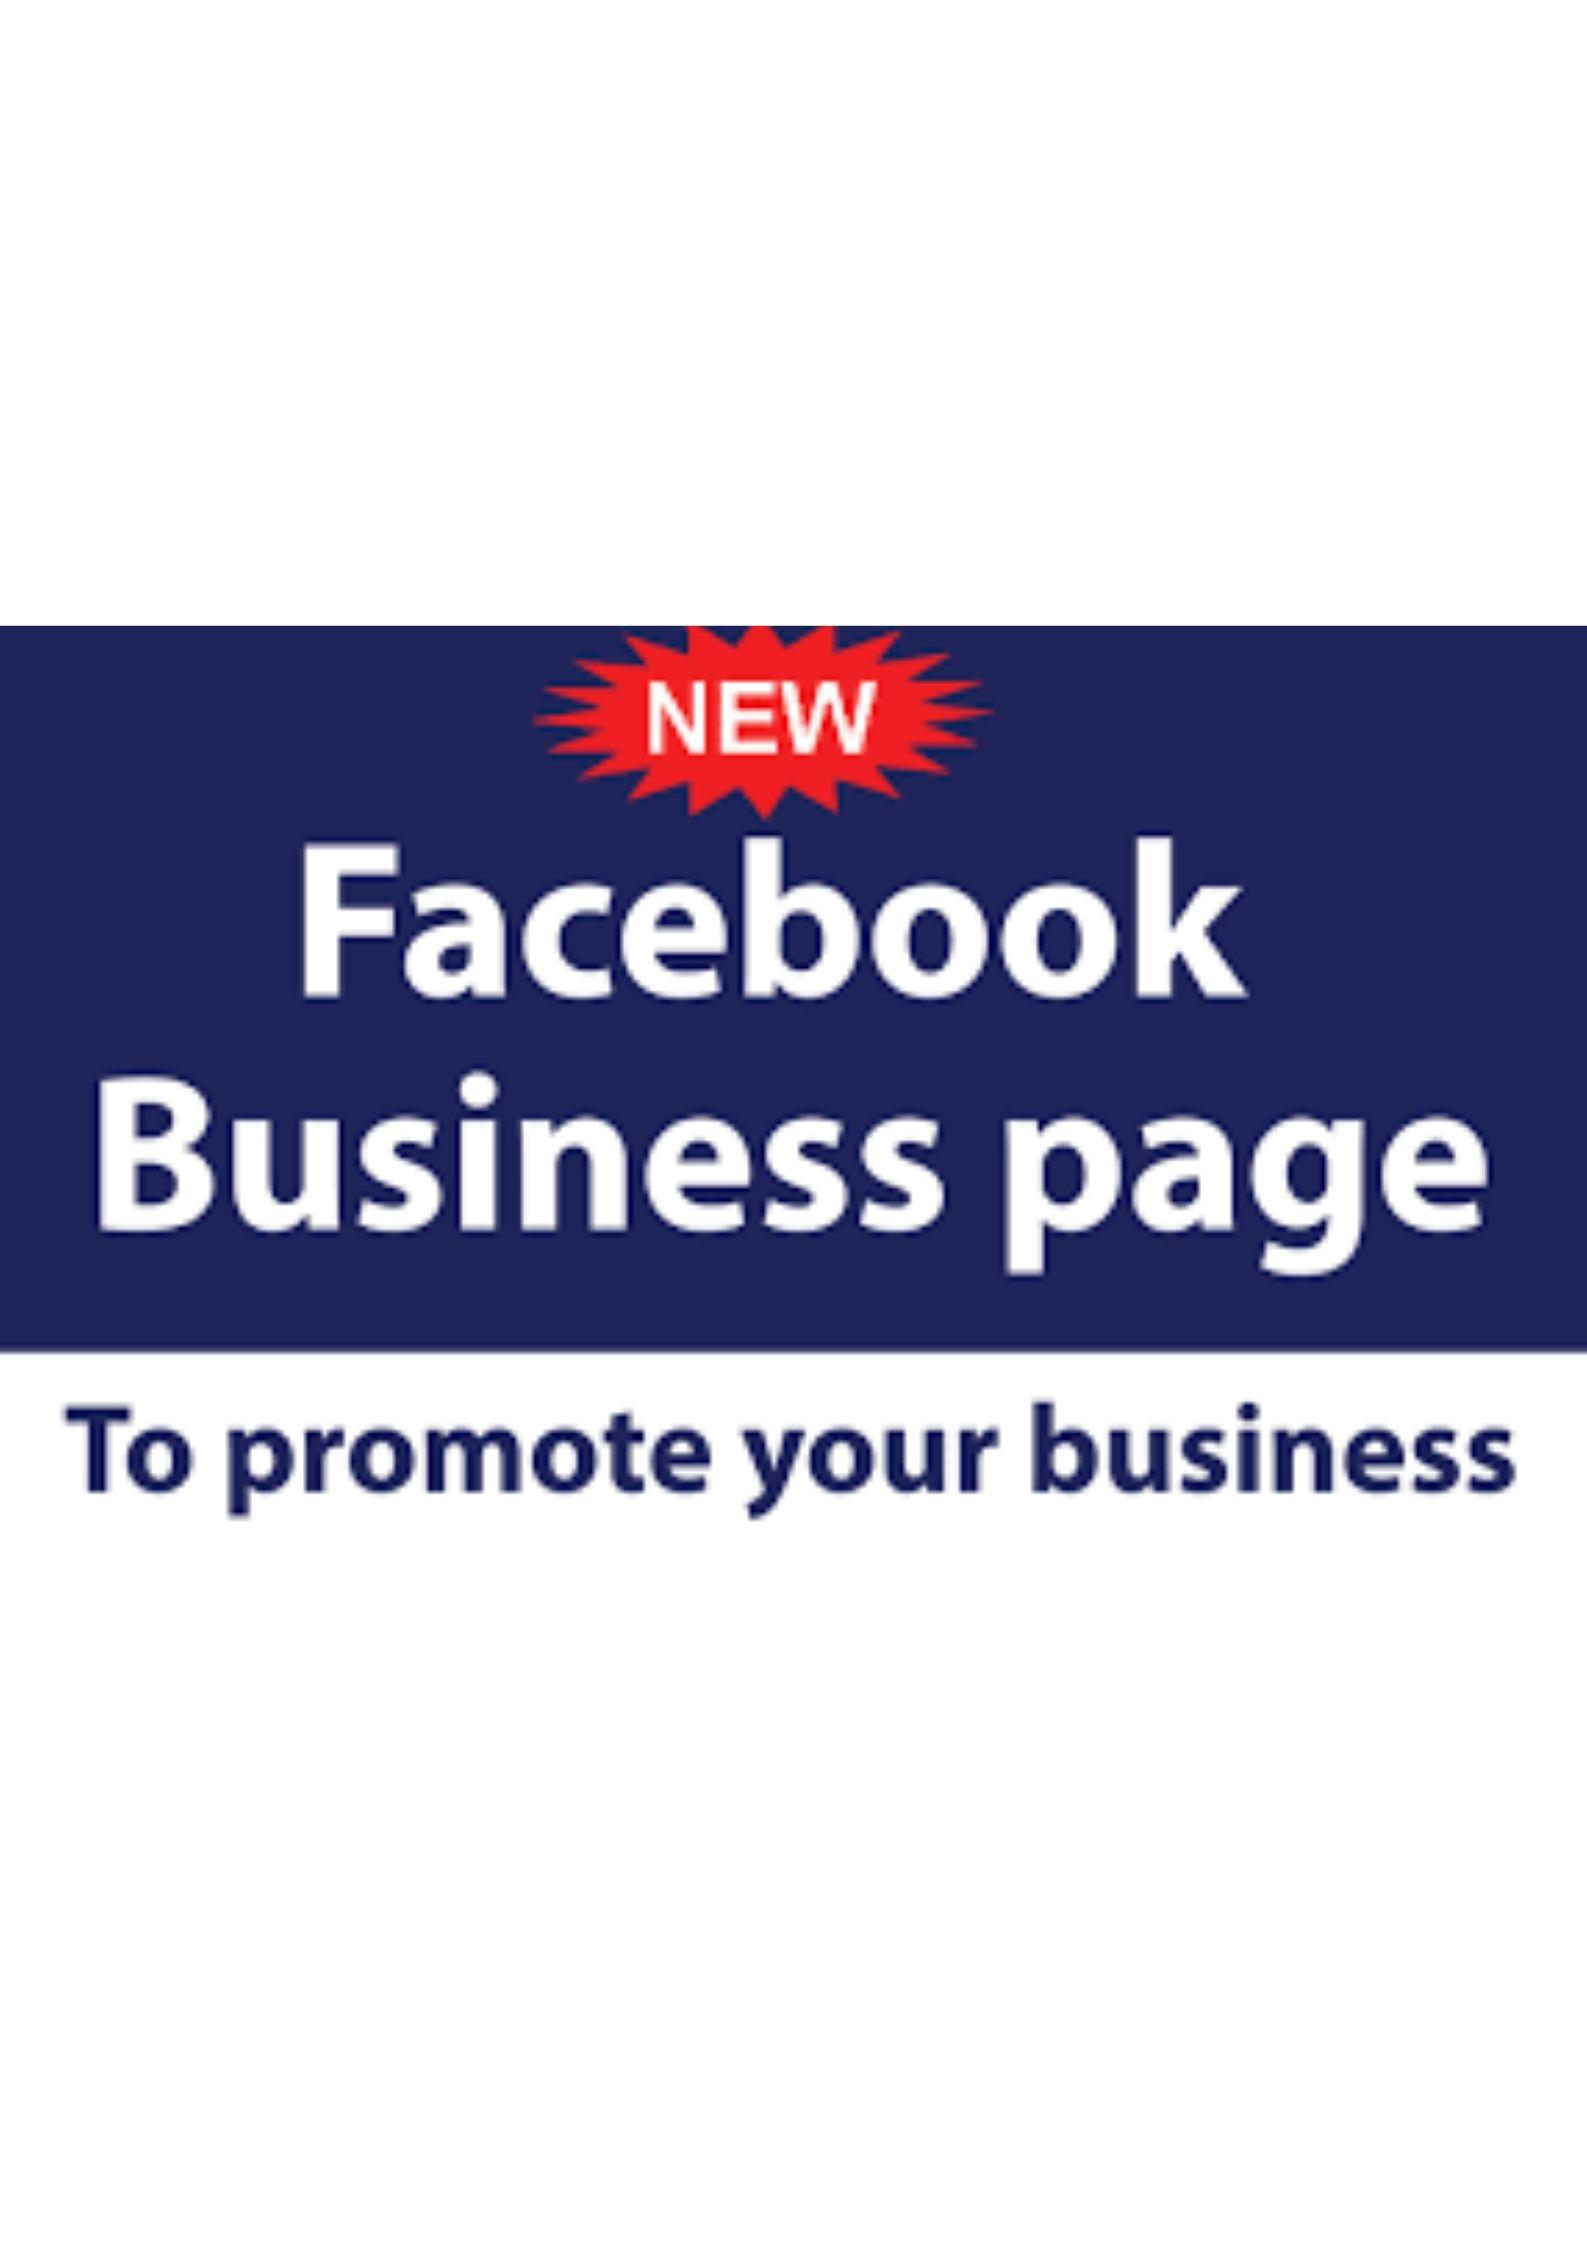 Create, Optimize, and Develop your Facebook Business Page